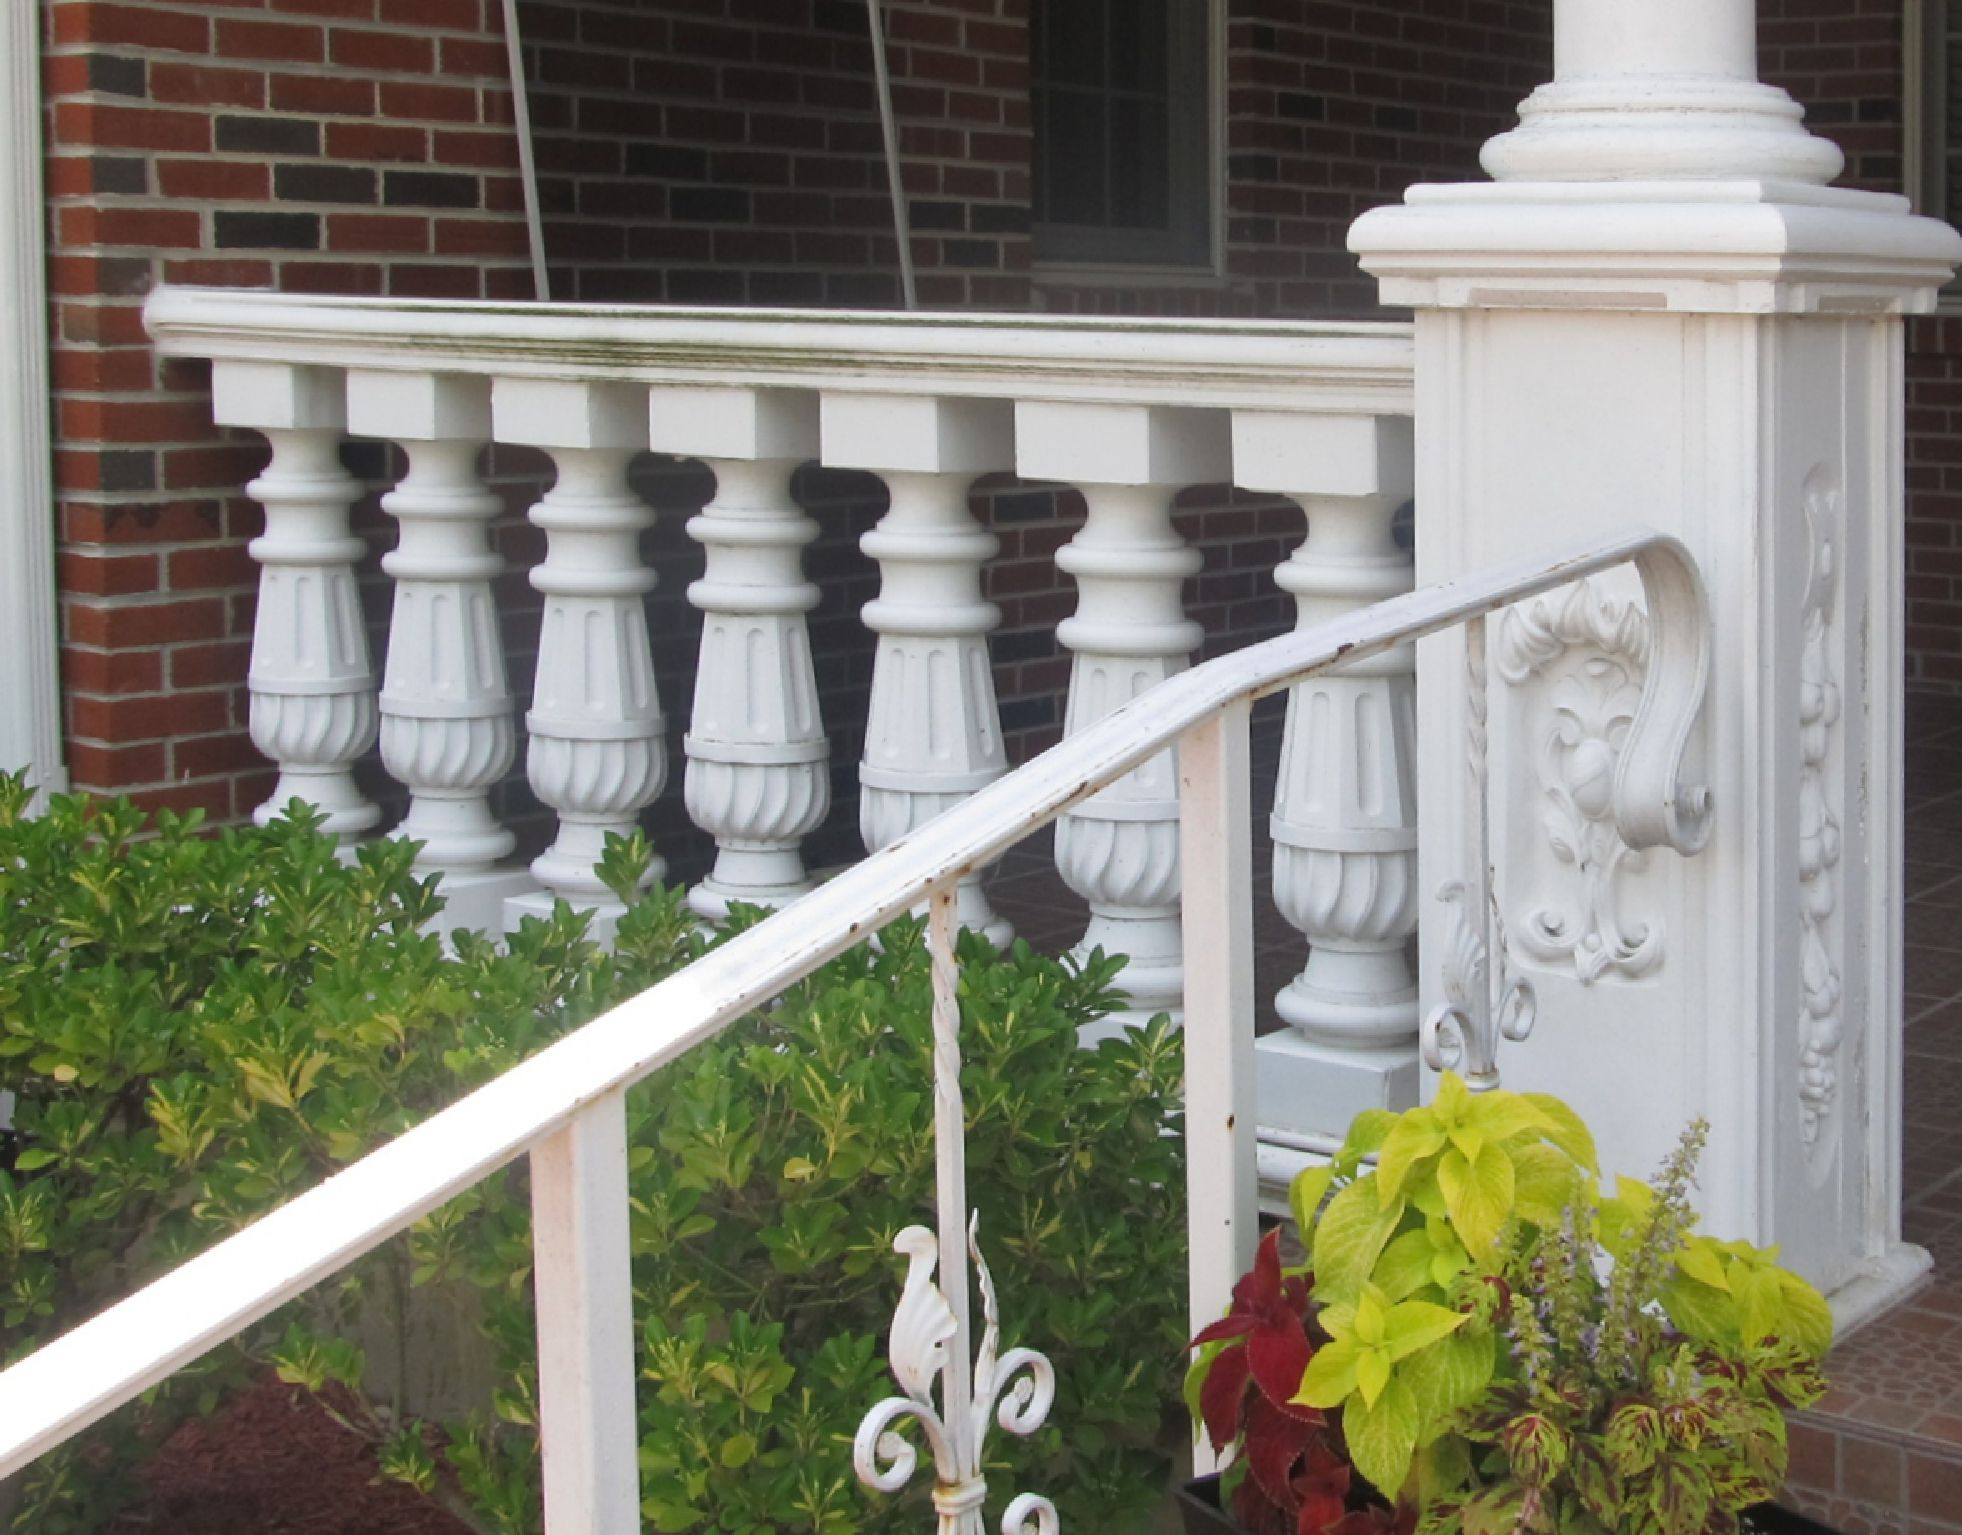 Type 3 balustrade in Yonkers, NY.   Village house design ...